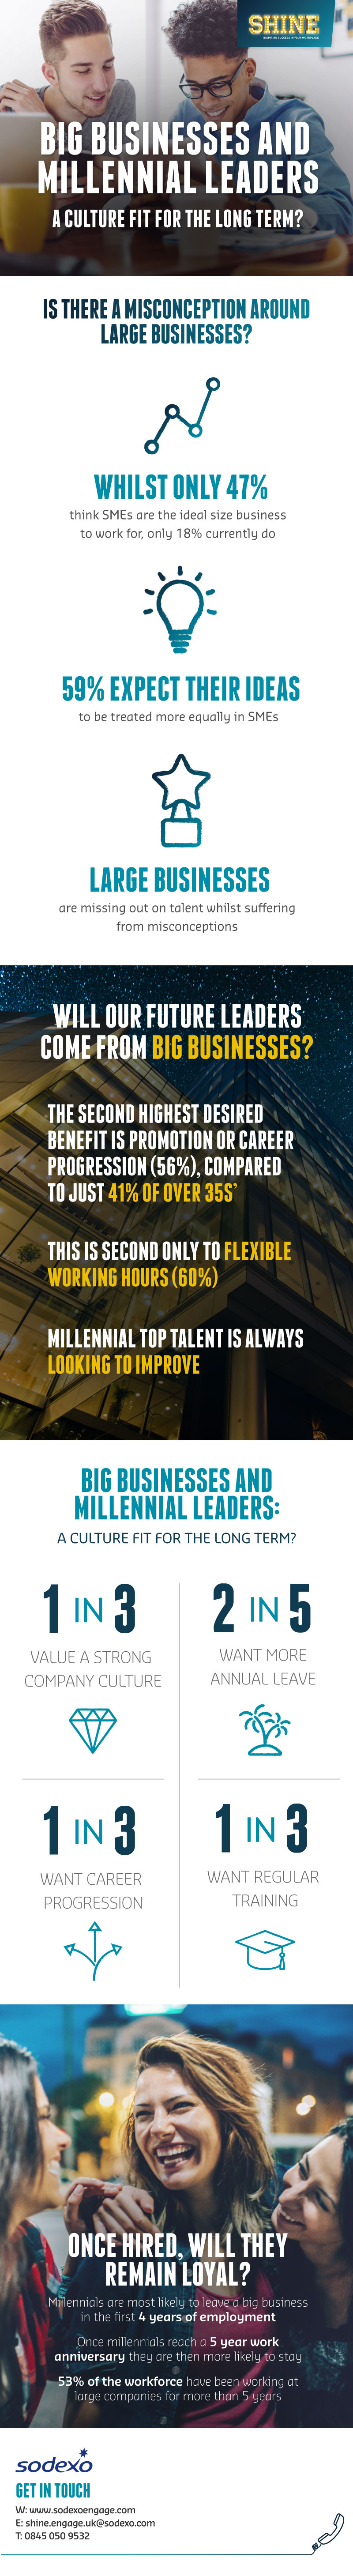 Big businesses and millennial leaders